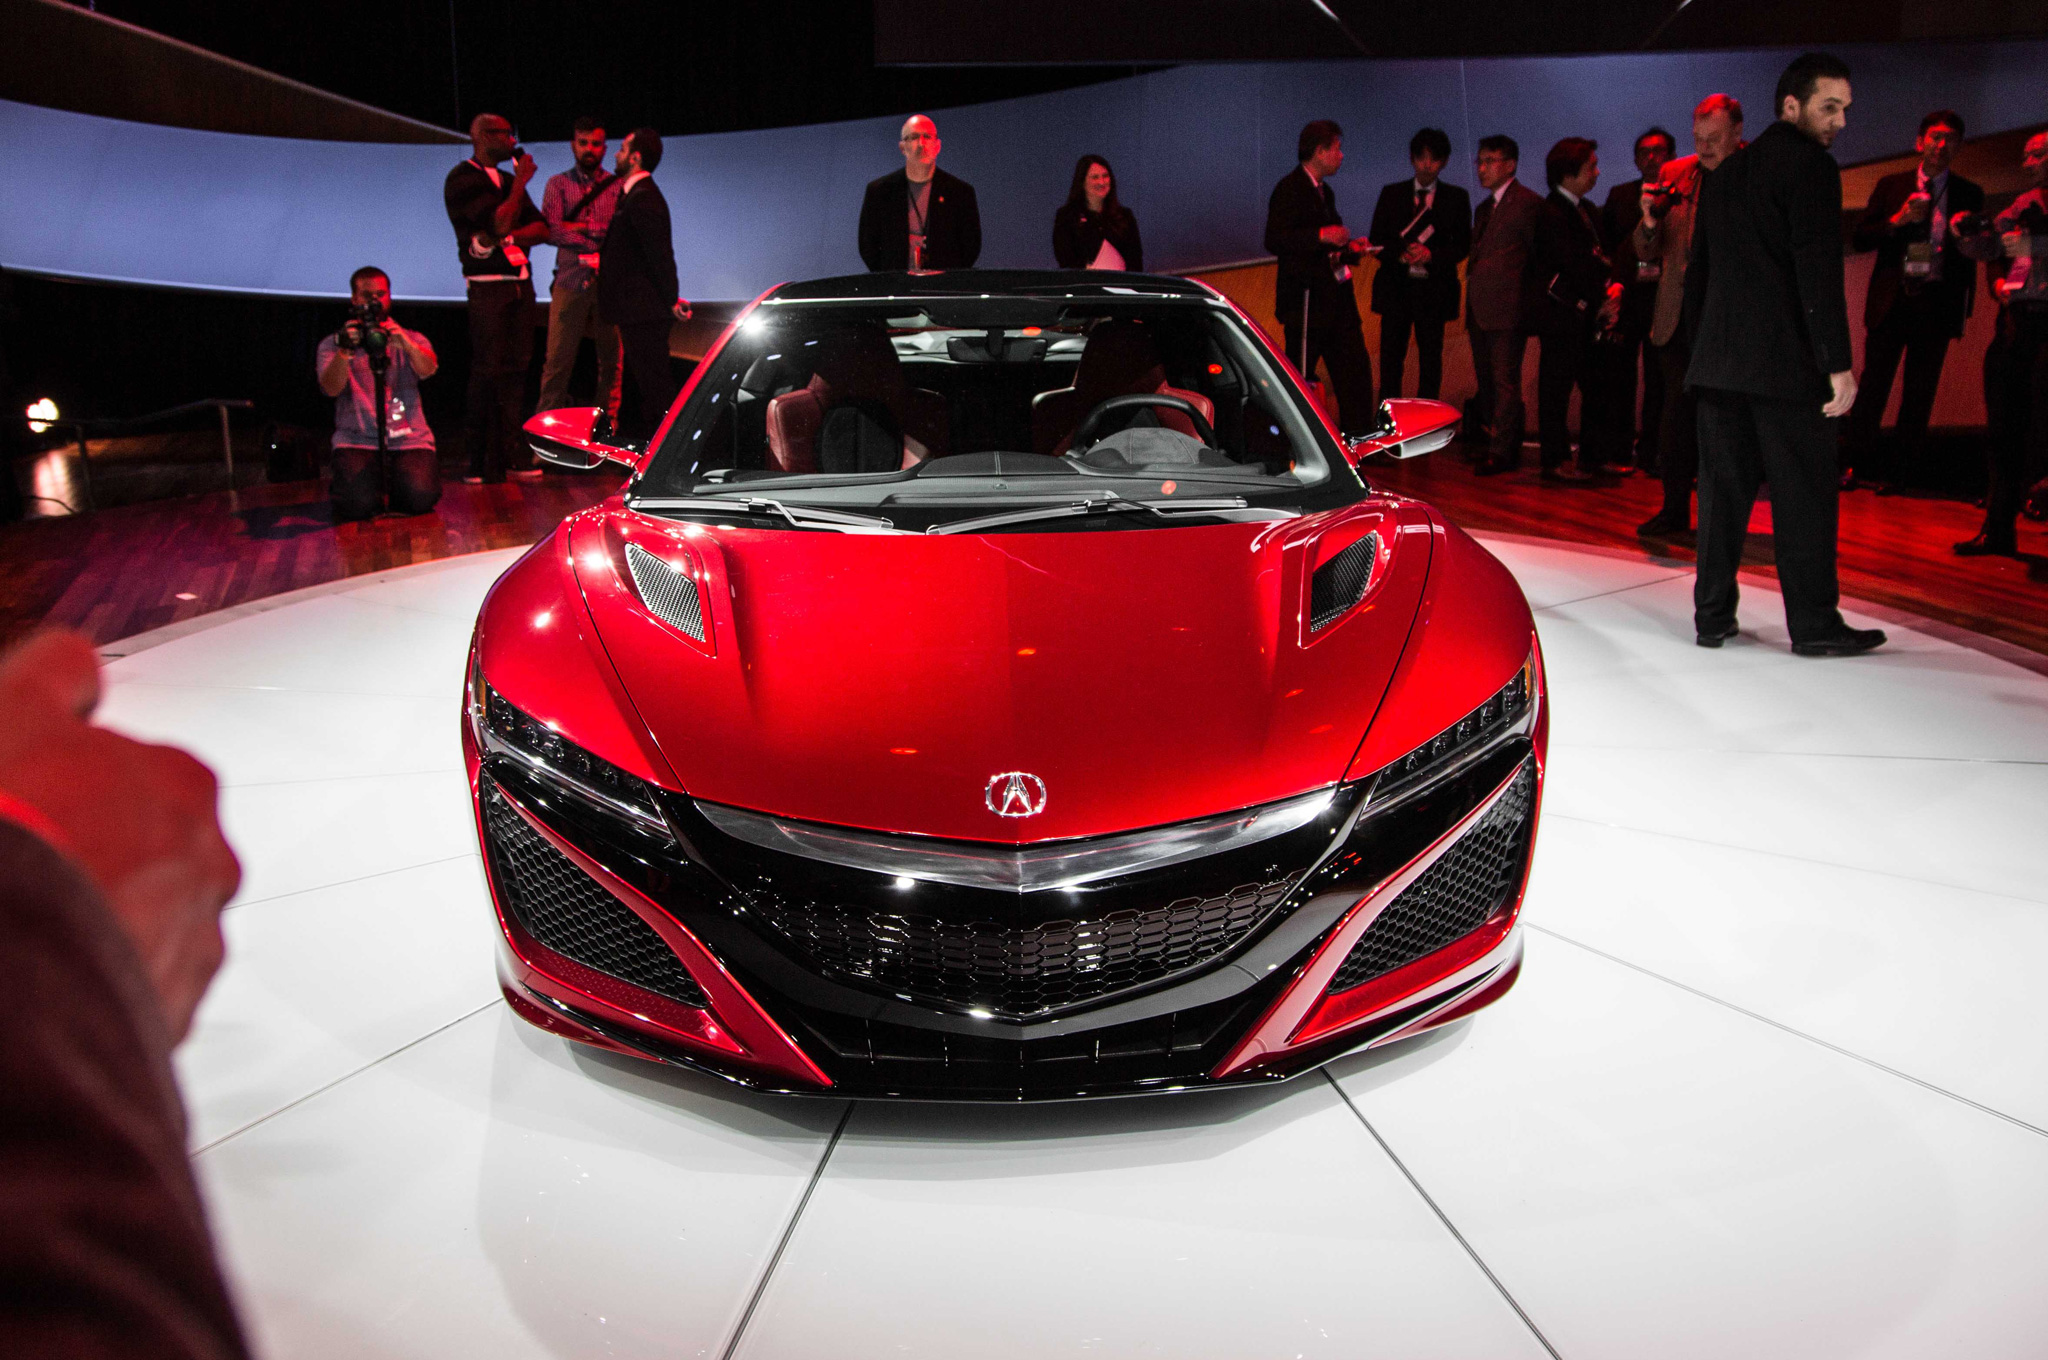 New 2016 Acura NSX Front End